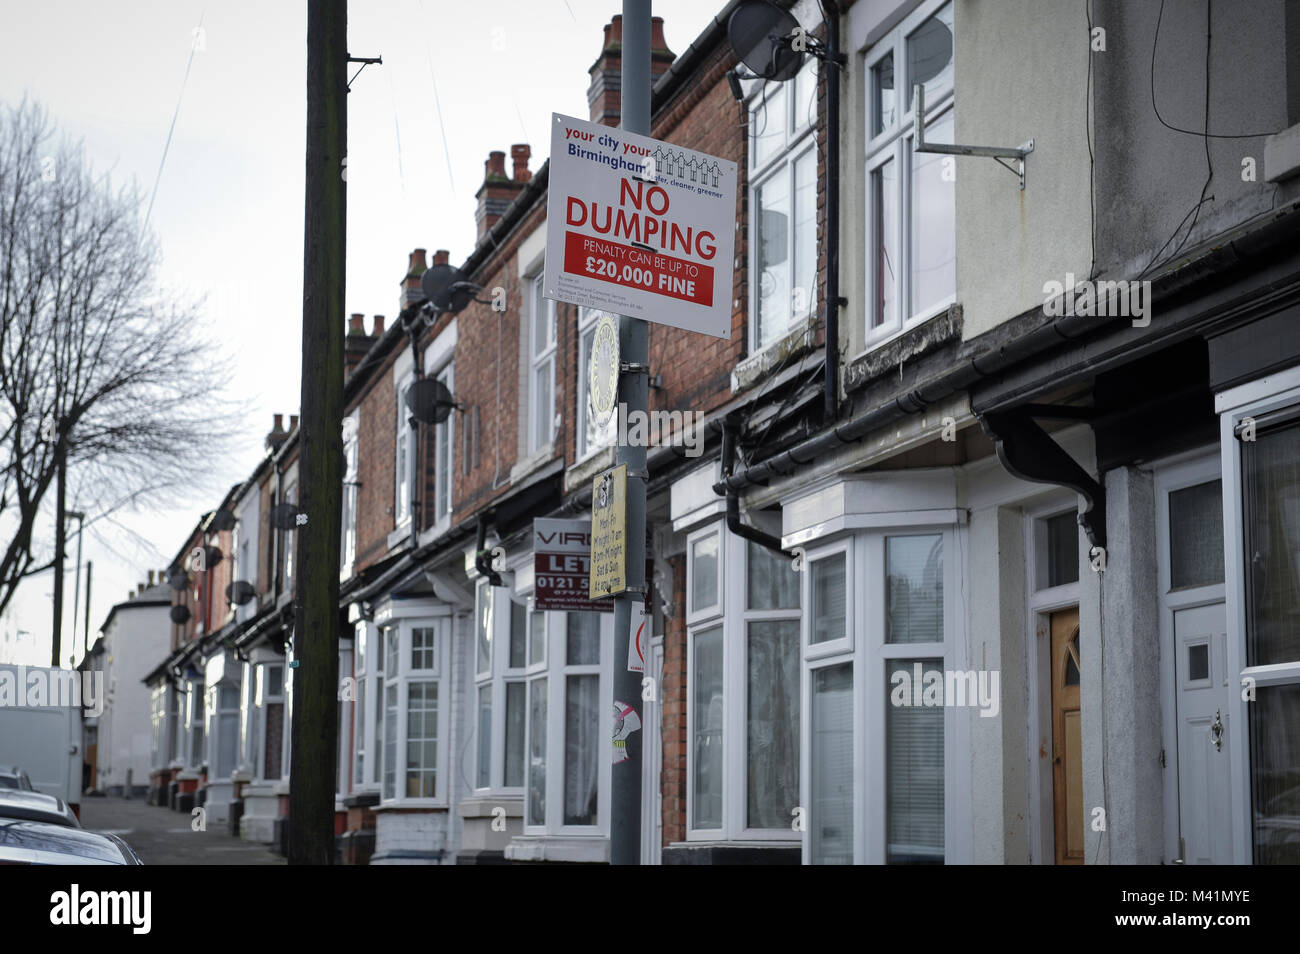 Benefits Street. Pictured is James Turner Street in the Winston Green area of Birmingham. It was filmed for a documentary - Stock Image